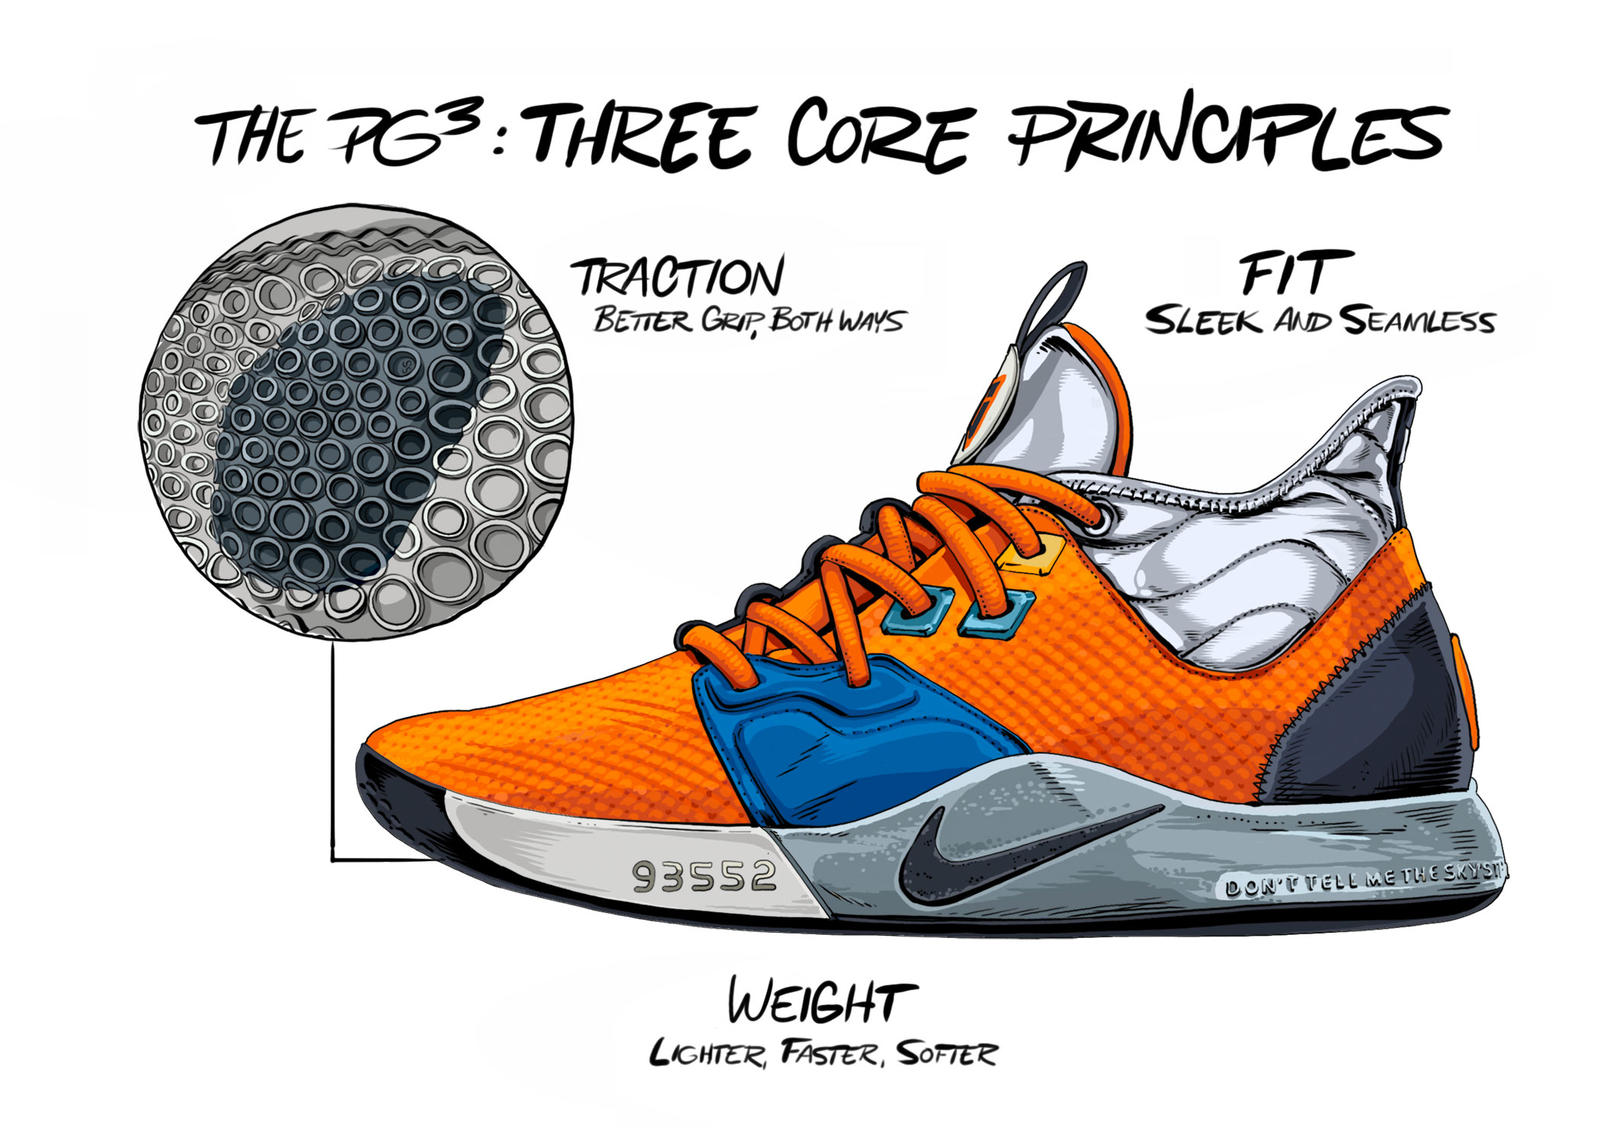 Introducing Paul George's Third Signature Shoe, the PG3 20